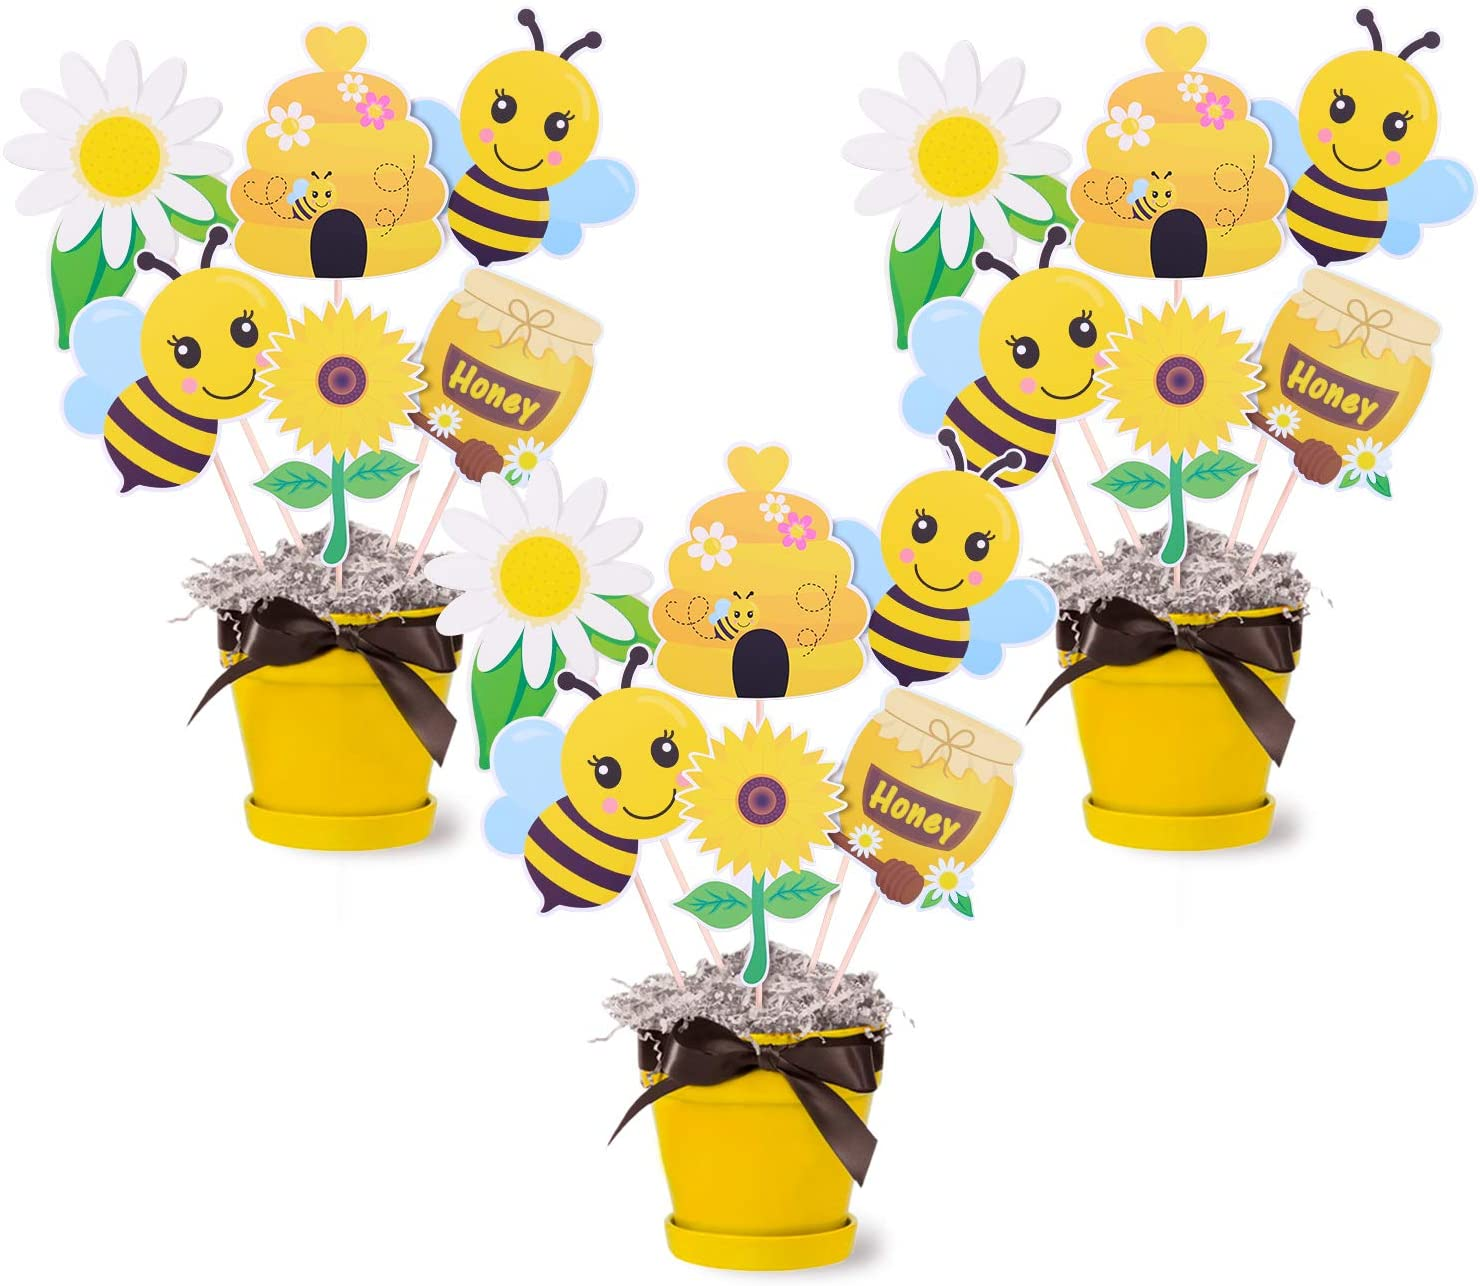 Bumble Bee Party Centerpieces Honey Bee Baby Shower Table Centerpieces Sticks Bee Gender Reveal Birthday Party Photo Props Table Topper Decorations Set of 18